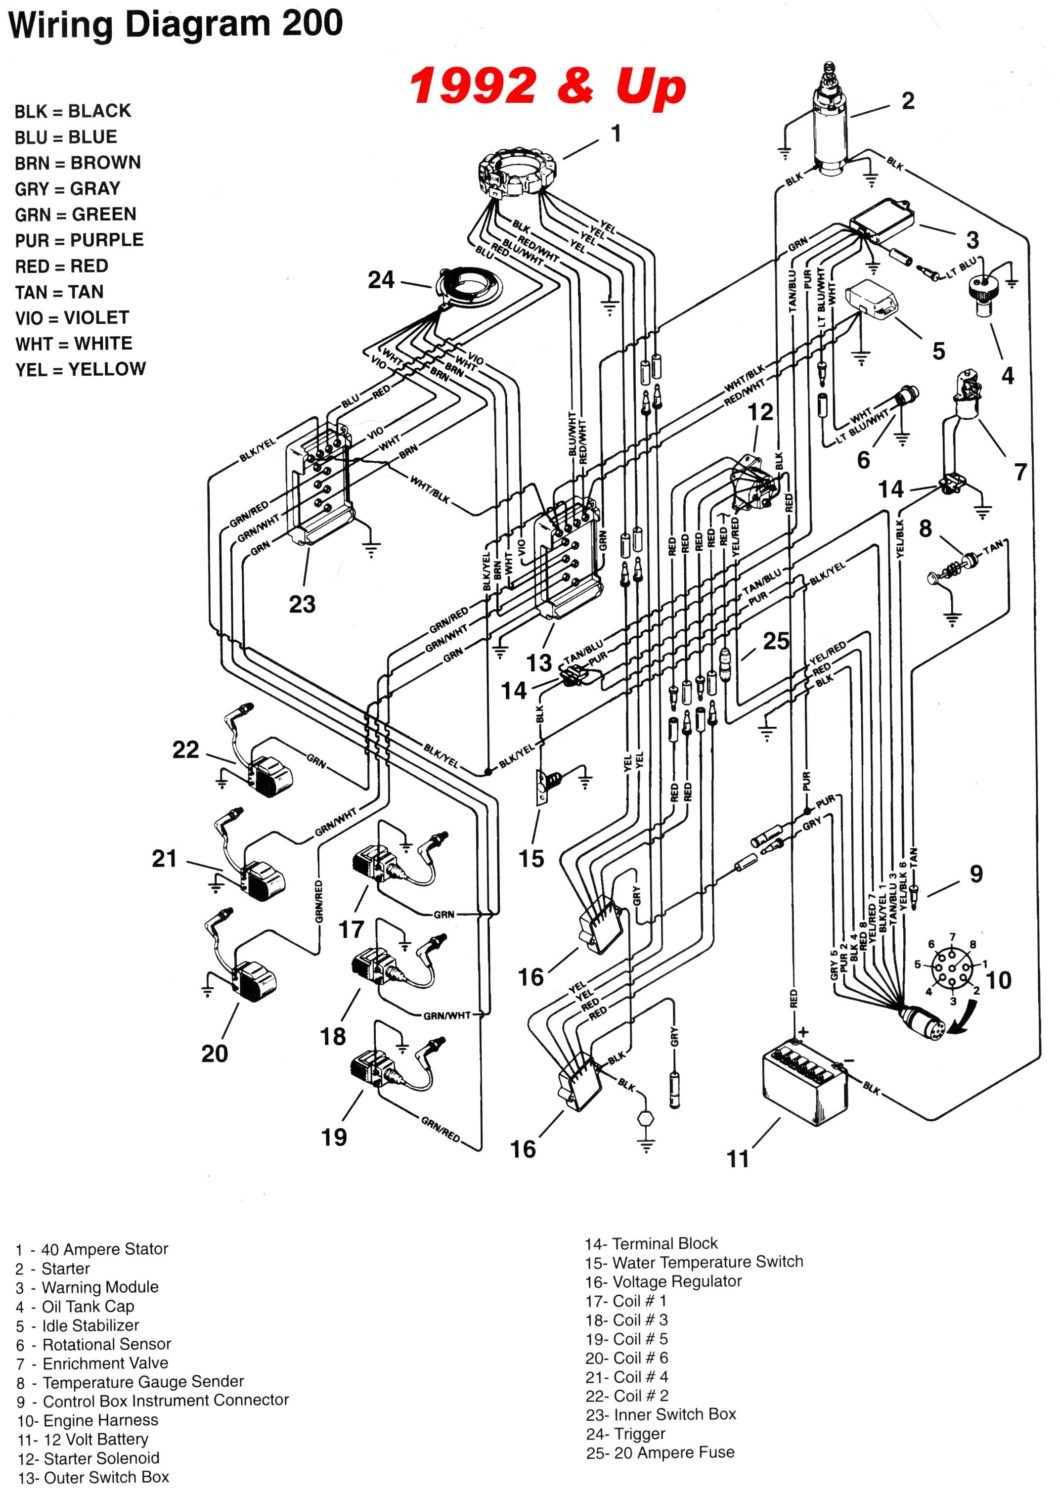 Honeywell S8610u Wiring Diagram | Wiring Diagram Image on honeywell  ignition control system